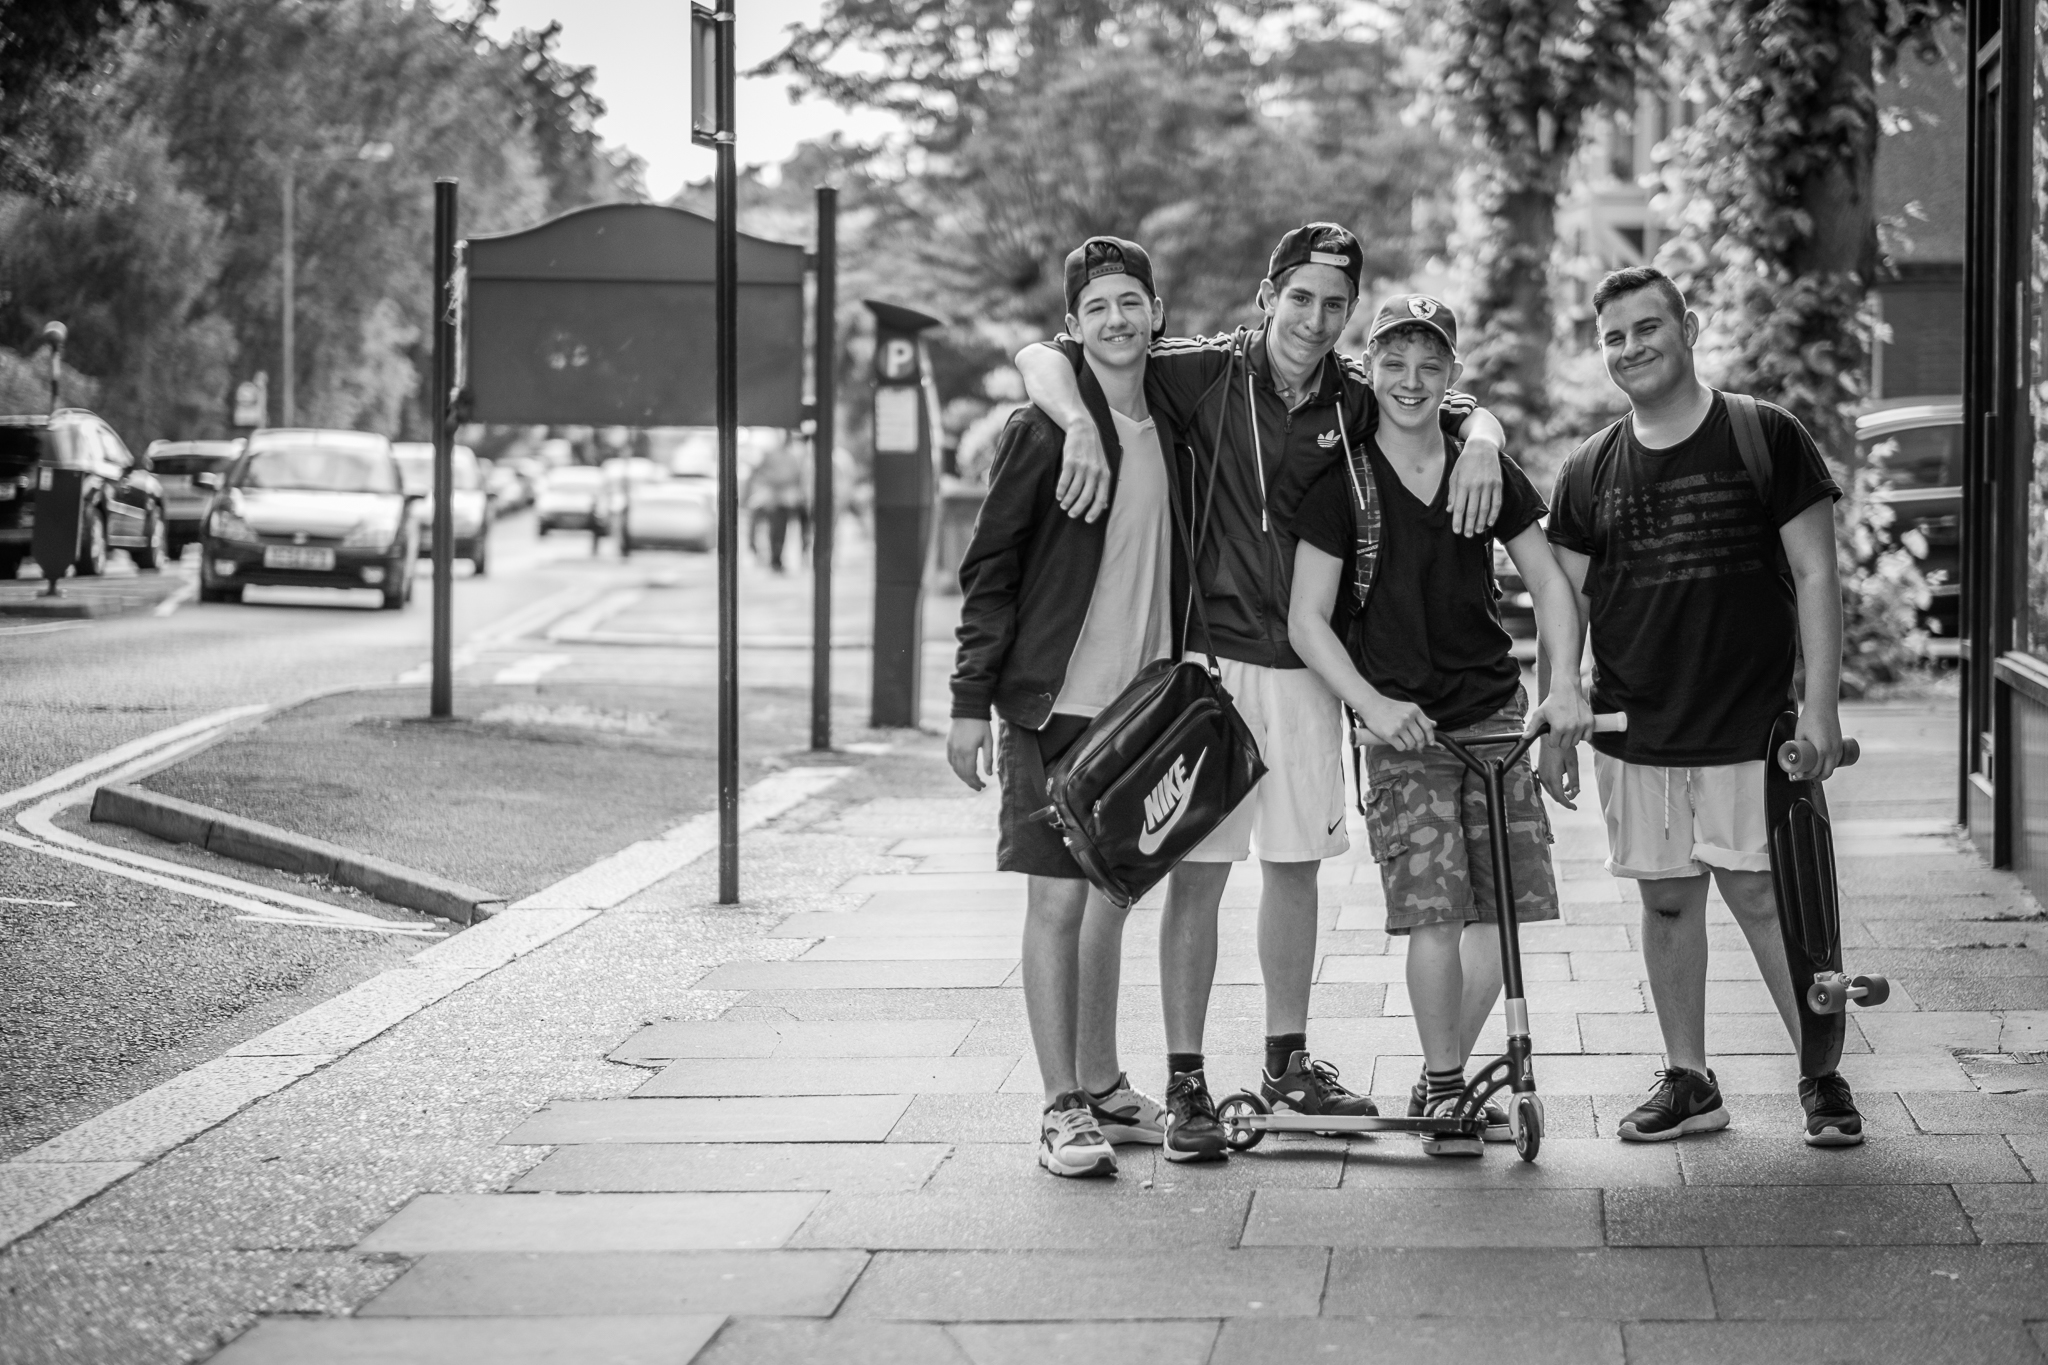 These guys actually asked me to take a photo of them for a change. They were walking by as I was trying to get a nice photo of my brother and his wife and one of them asked if I was taking photos of his friends, I said I wasn't but could if he wanted me to.